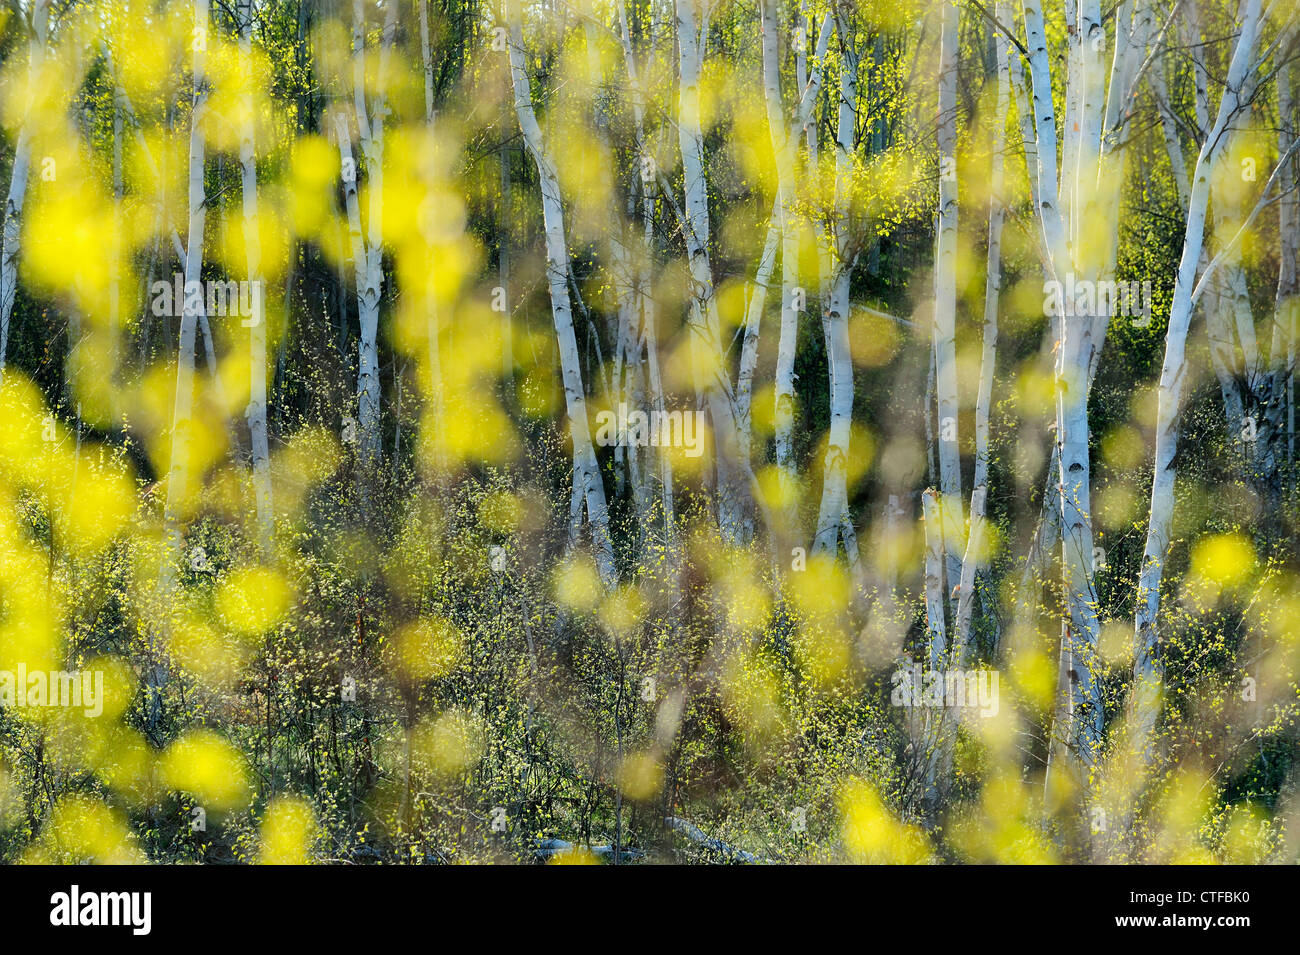 Spring birch trees as seen through out of focus birch leaves, Greater Sudbury, Ontario, Canada - Stock Image